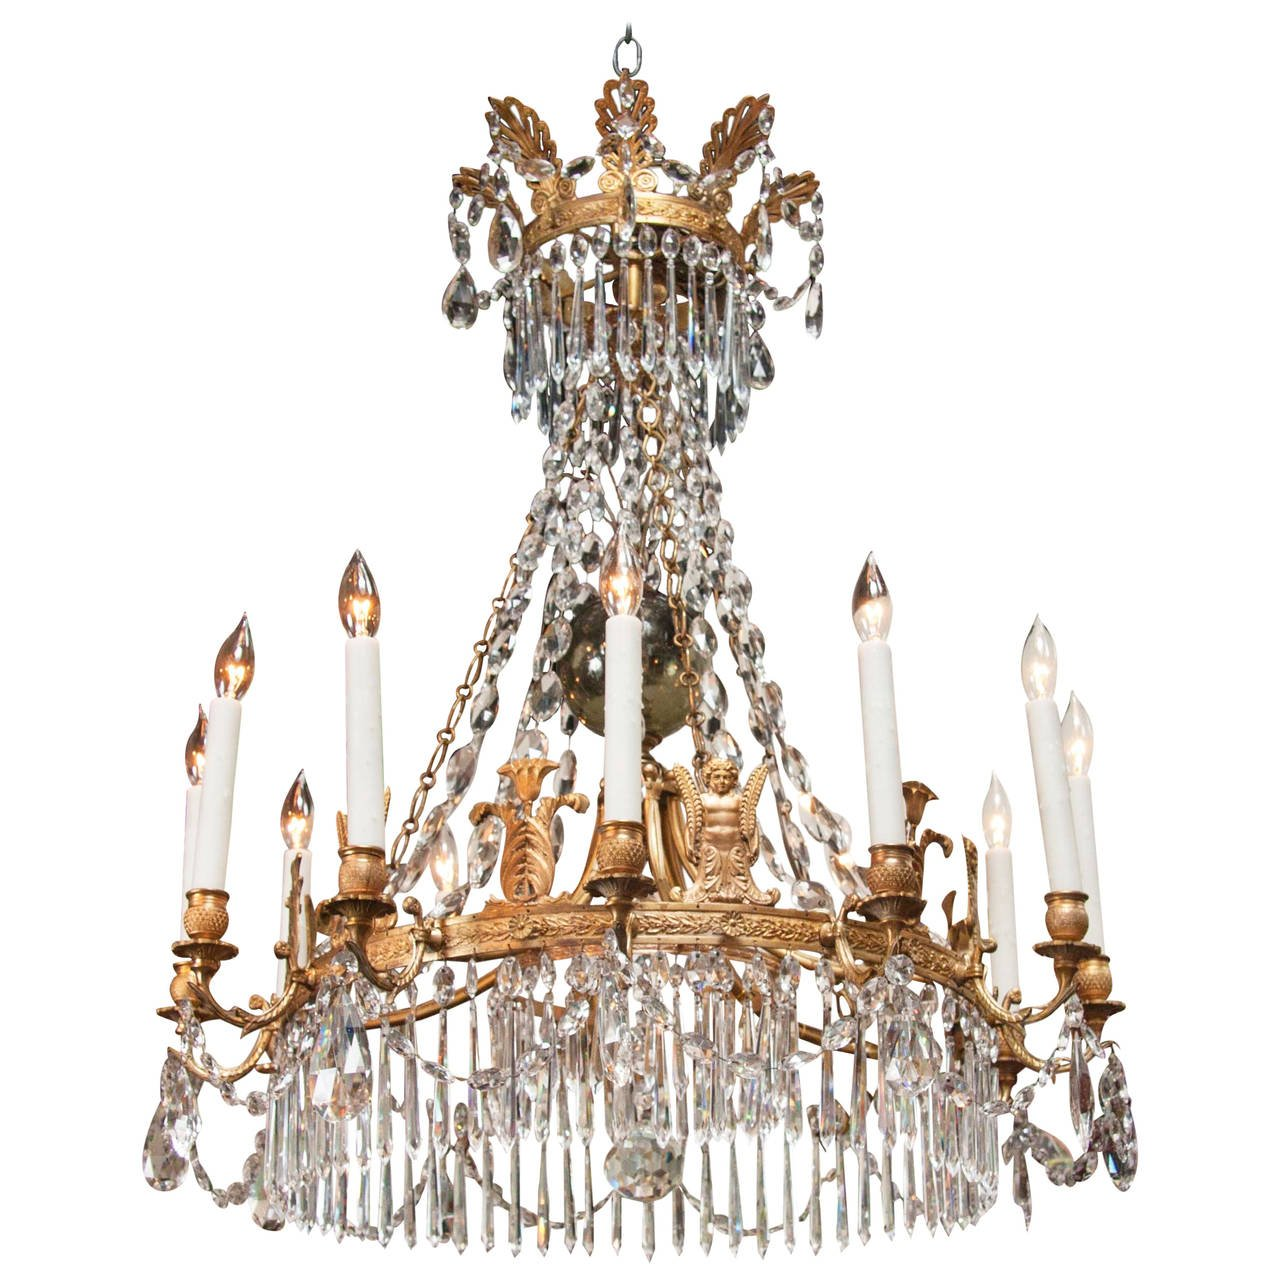 Russian Neoclassical Empire Twelve-Light Chandelier